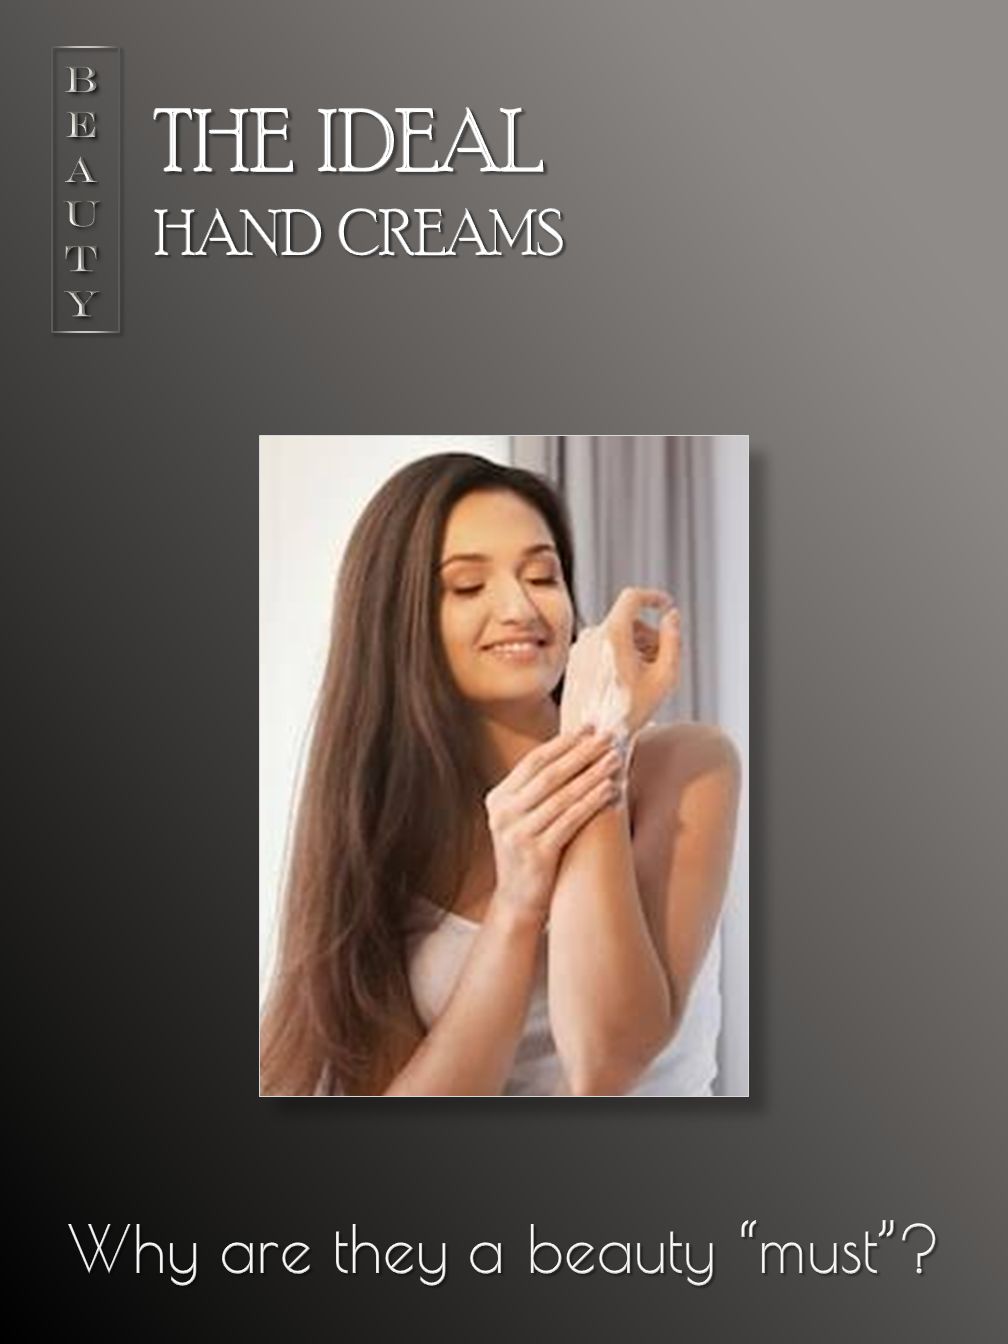 The Ideal Hand Creams